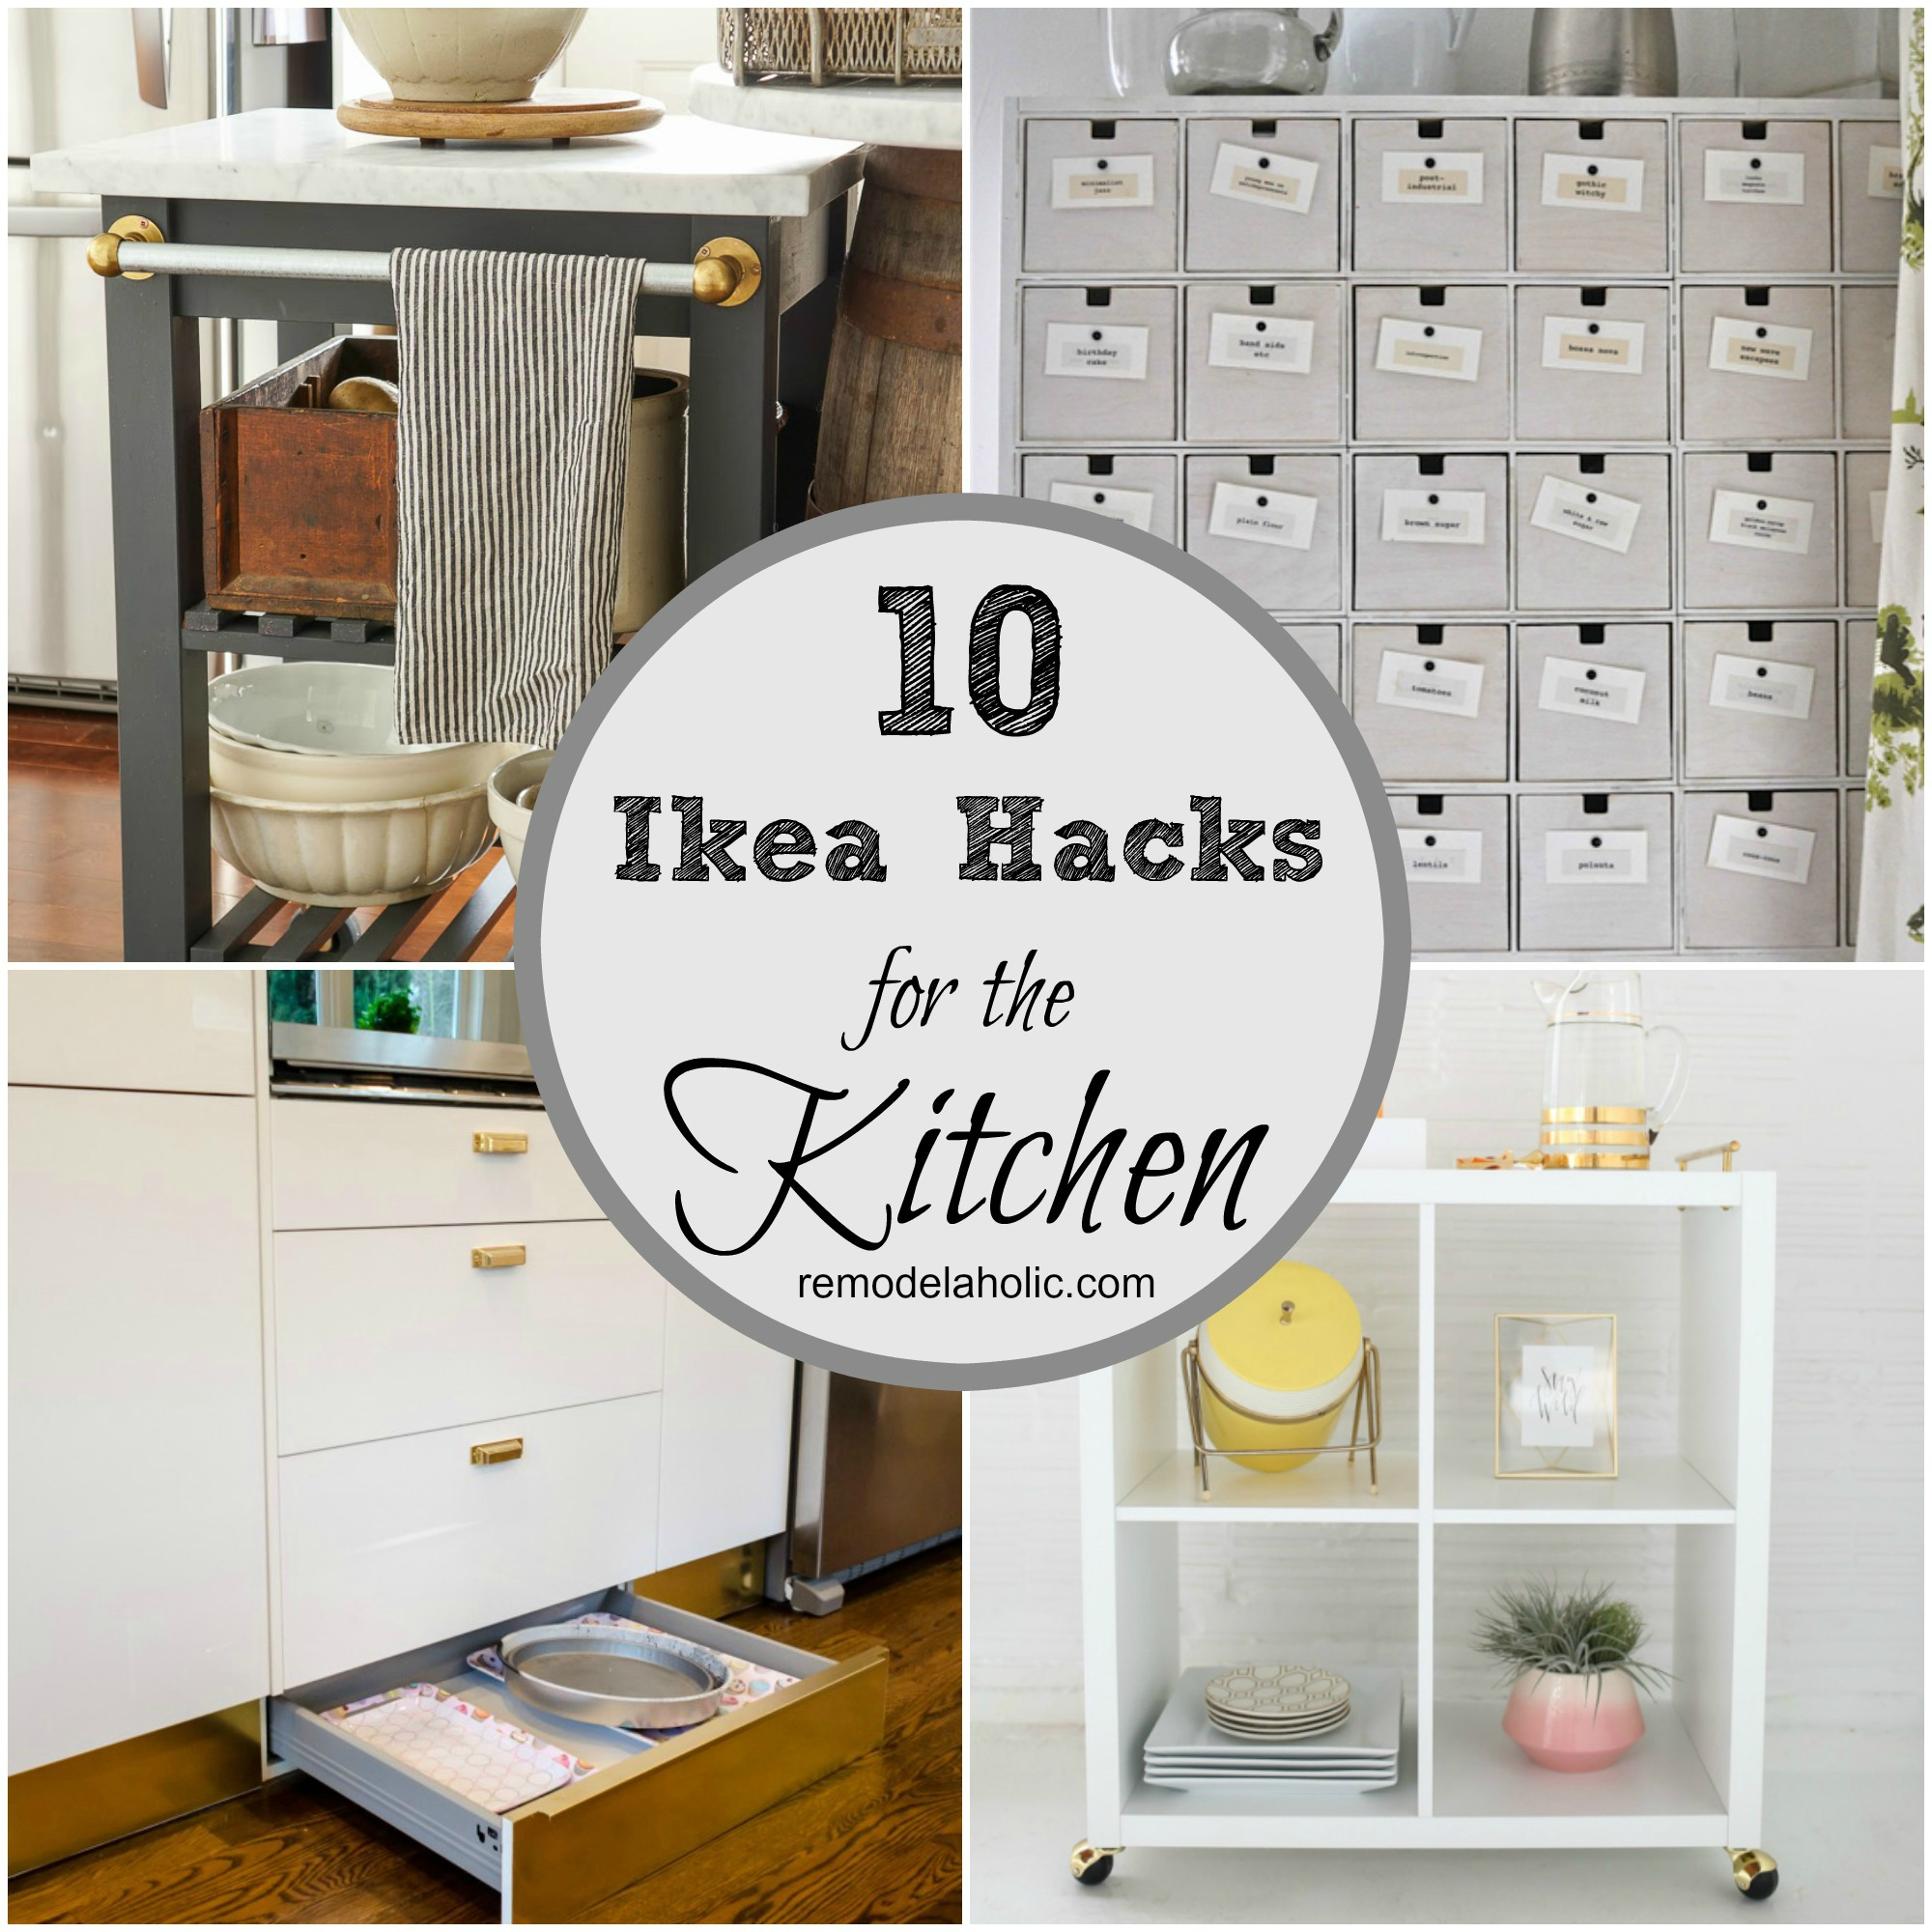 10 ingenious ikea hacks for the kitchen remodelaholic bloglovin u0027